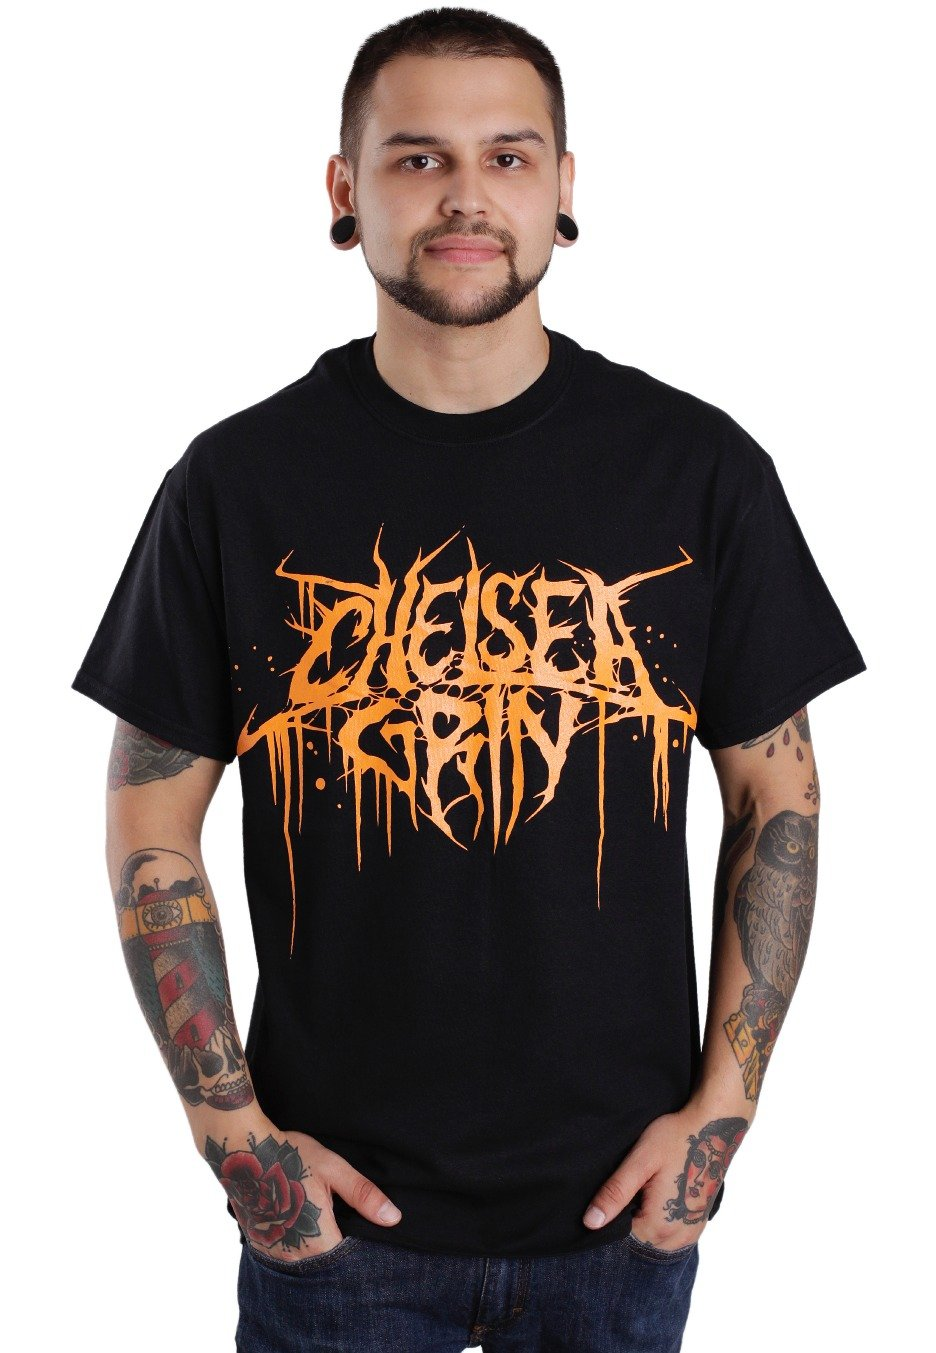 Chelsea Grin Snake And Arrow T Shirt Official